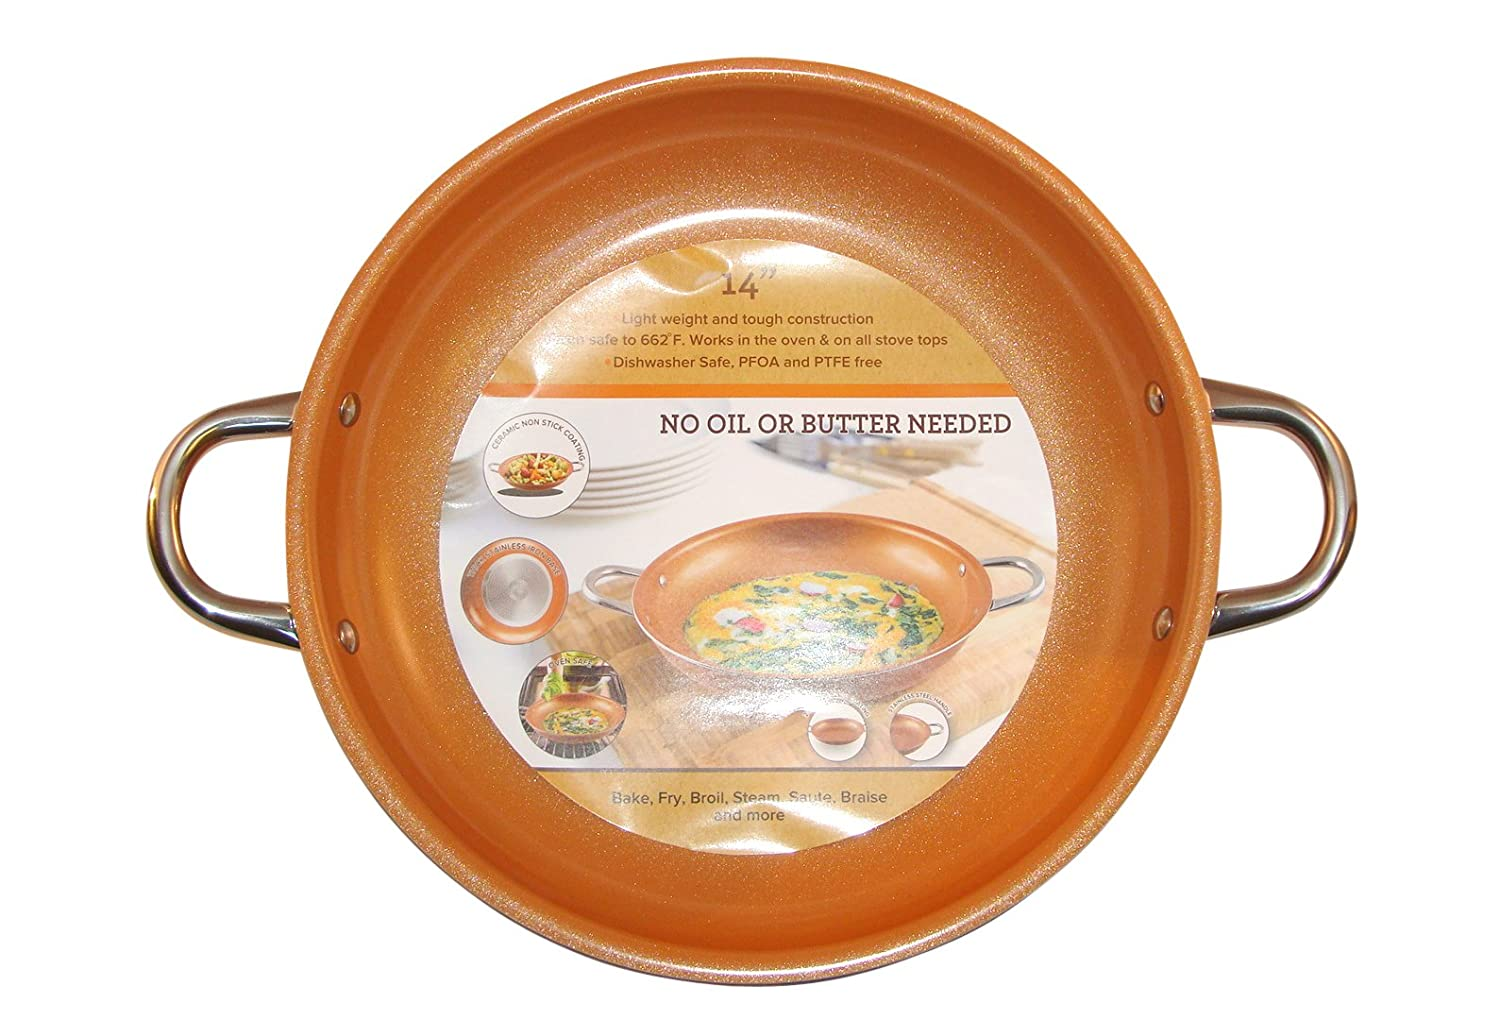 Copper Frying Pan 14-Inch Non Stick Ceramic Infused Titanium Steel Oven Safe, Dish Washer Safe, Scratch Proof Round Handles For Comfort Grip